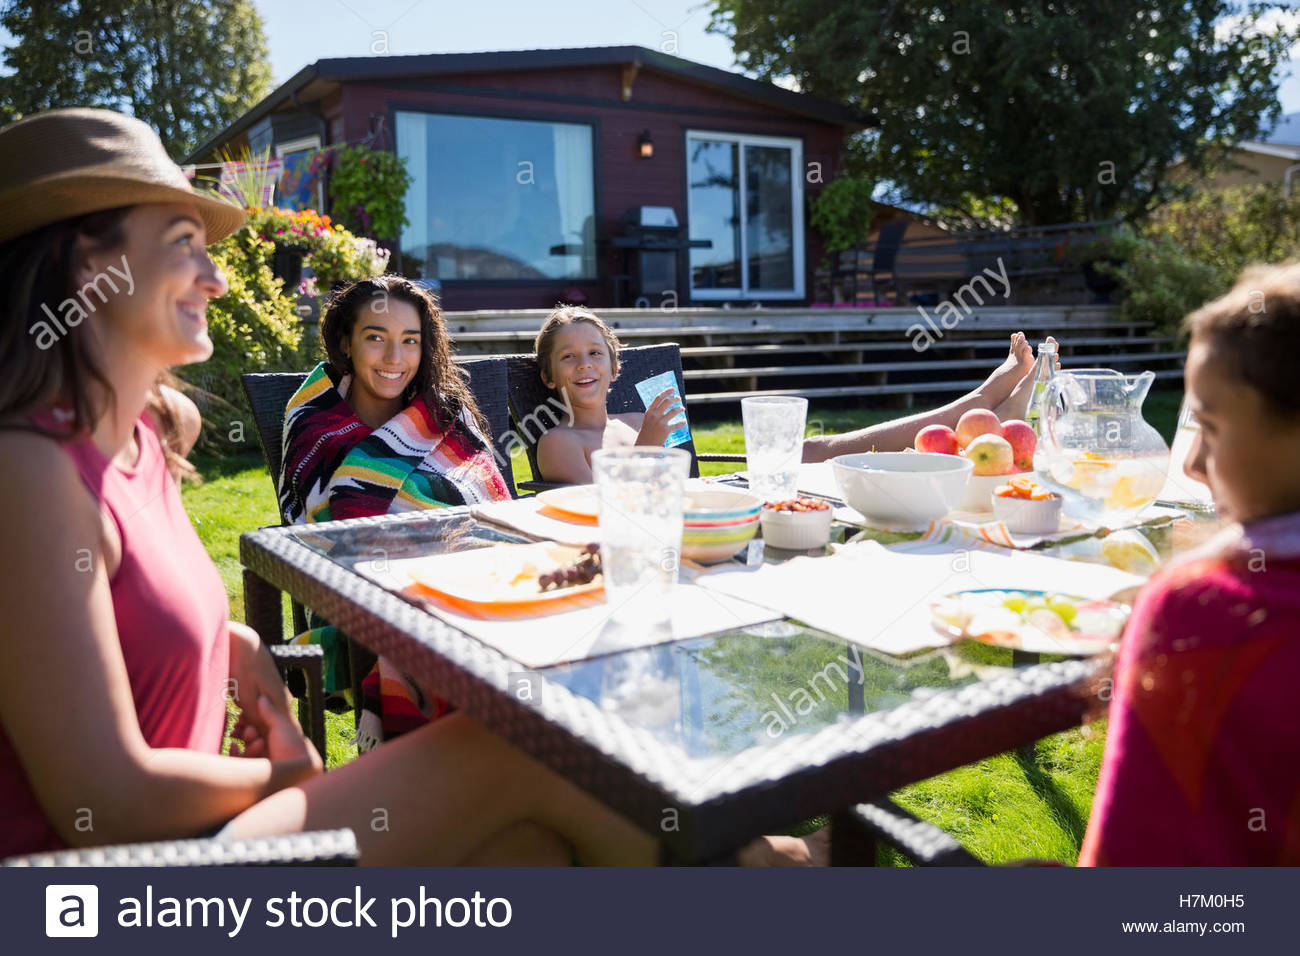 Family eating at sunny summer patio table - Stock Image